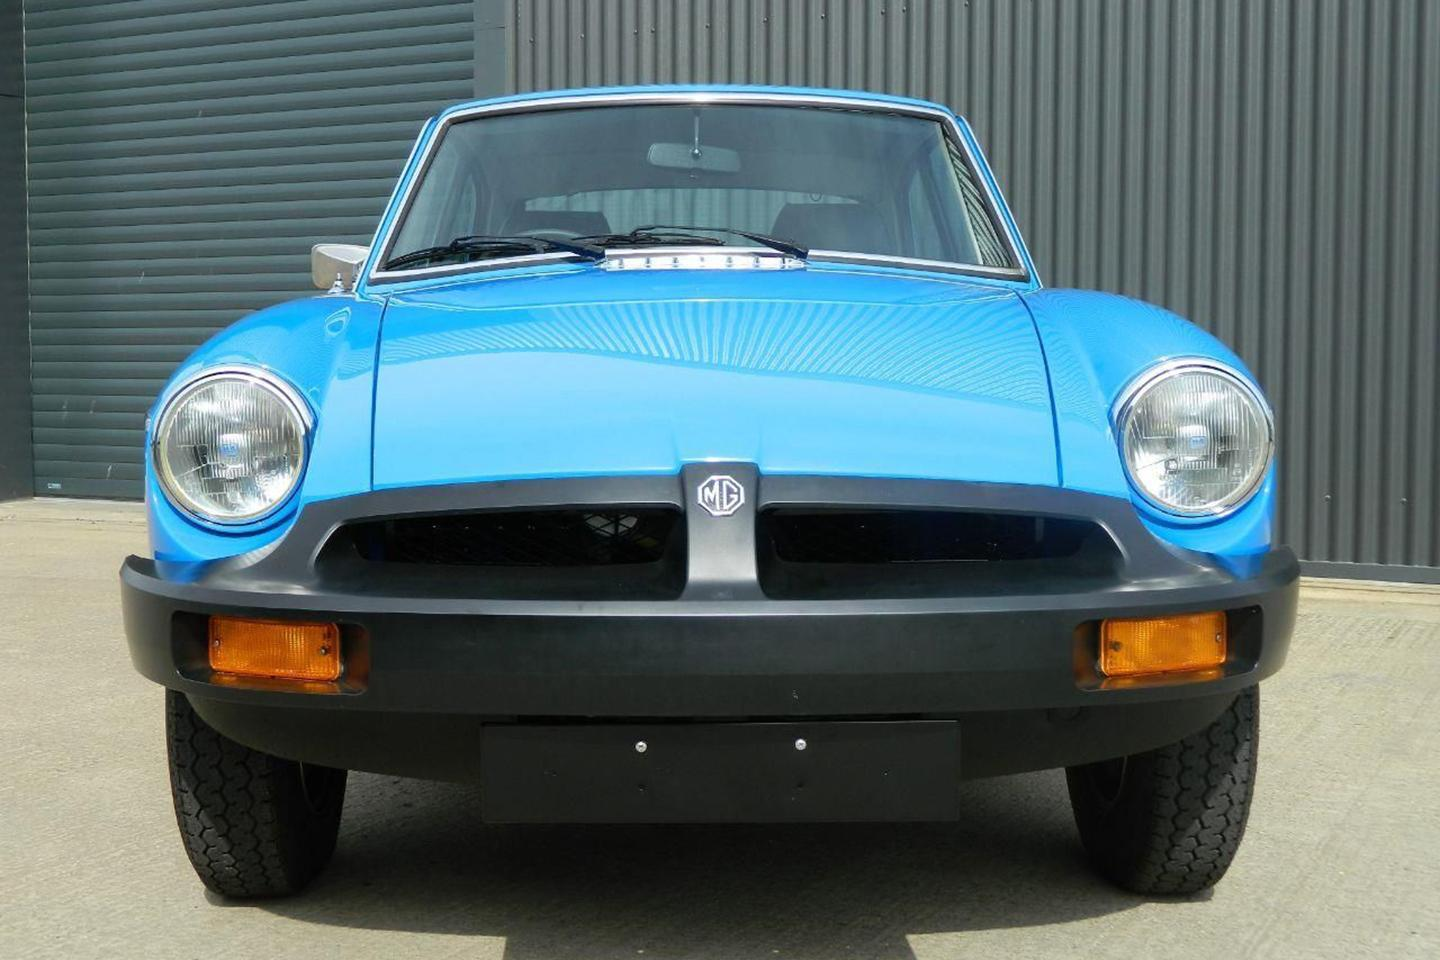 Re Delivery Mileage Mgb For Sale Page 1 General Gassing Pistonheads Uk [ 960 x 1440 Pixel ]